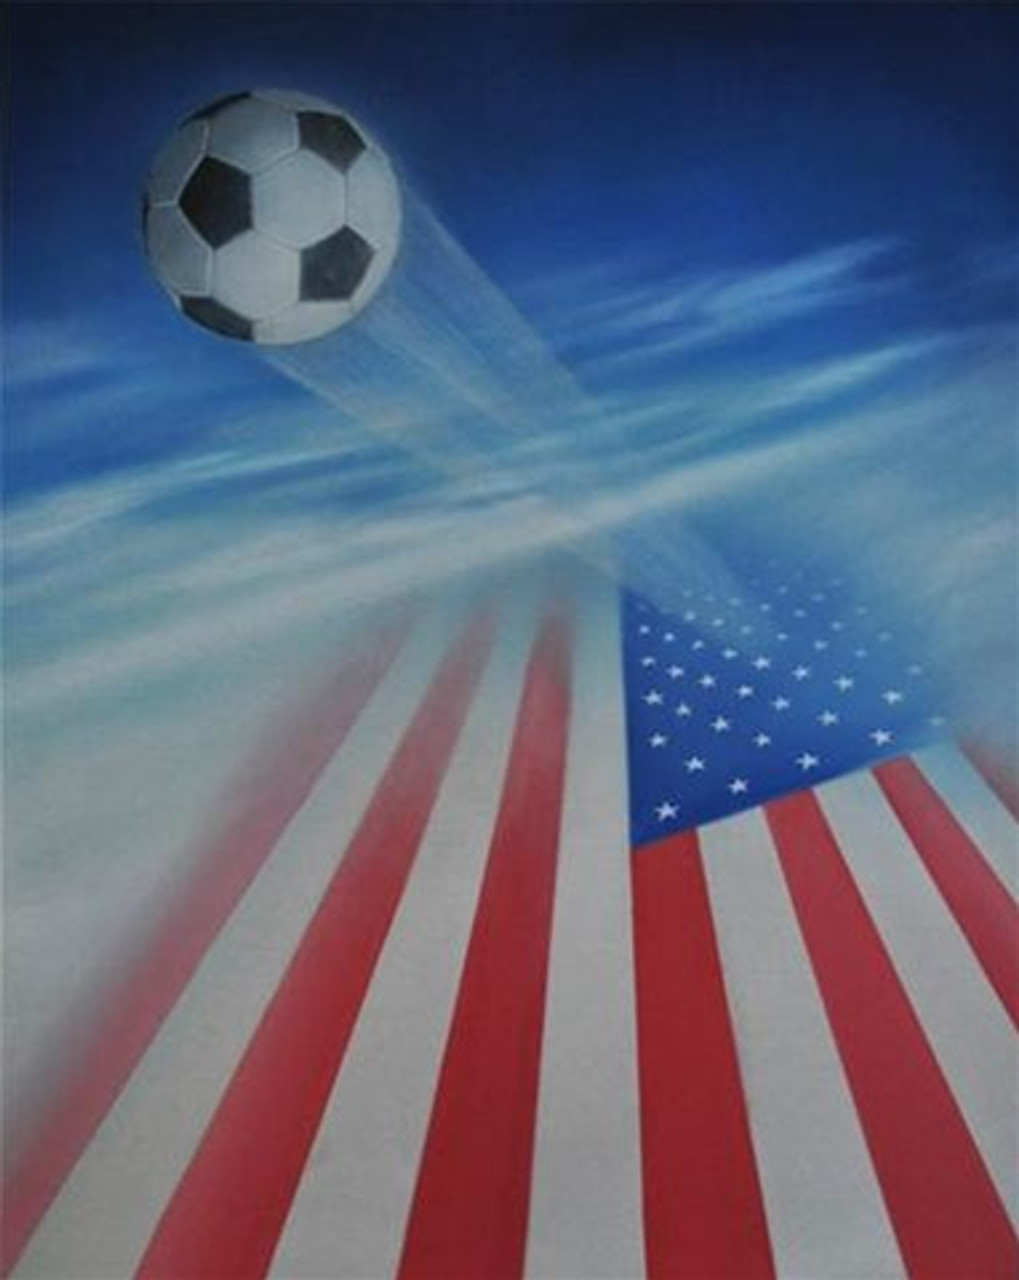 american flag and soccer